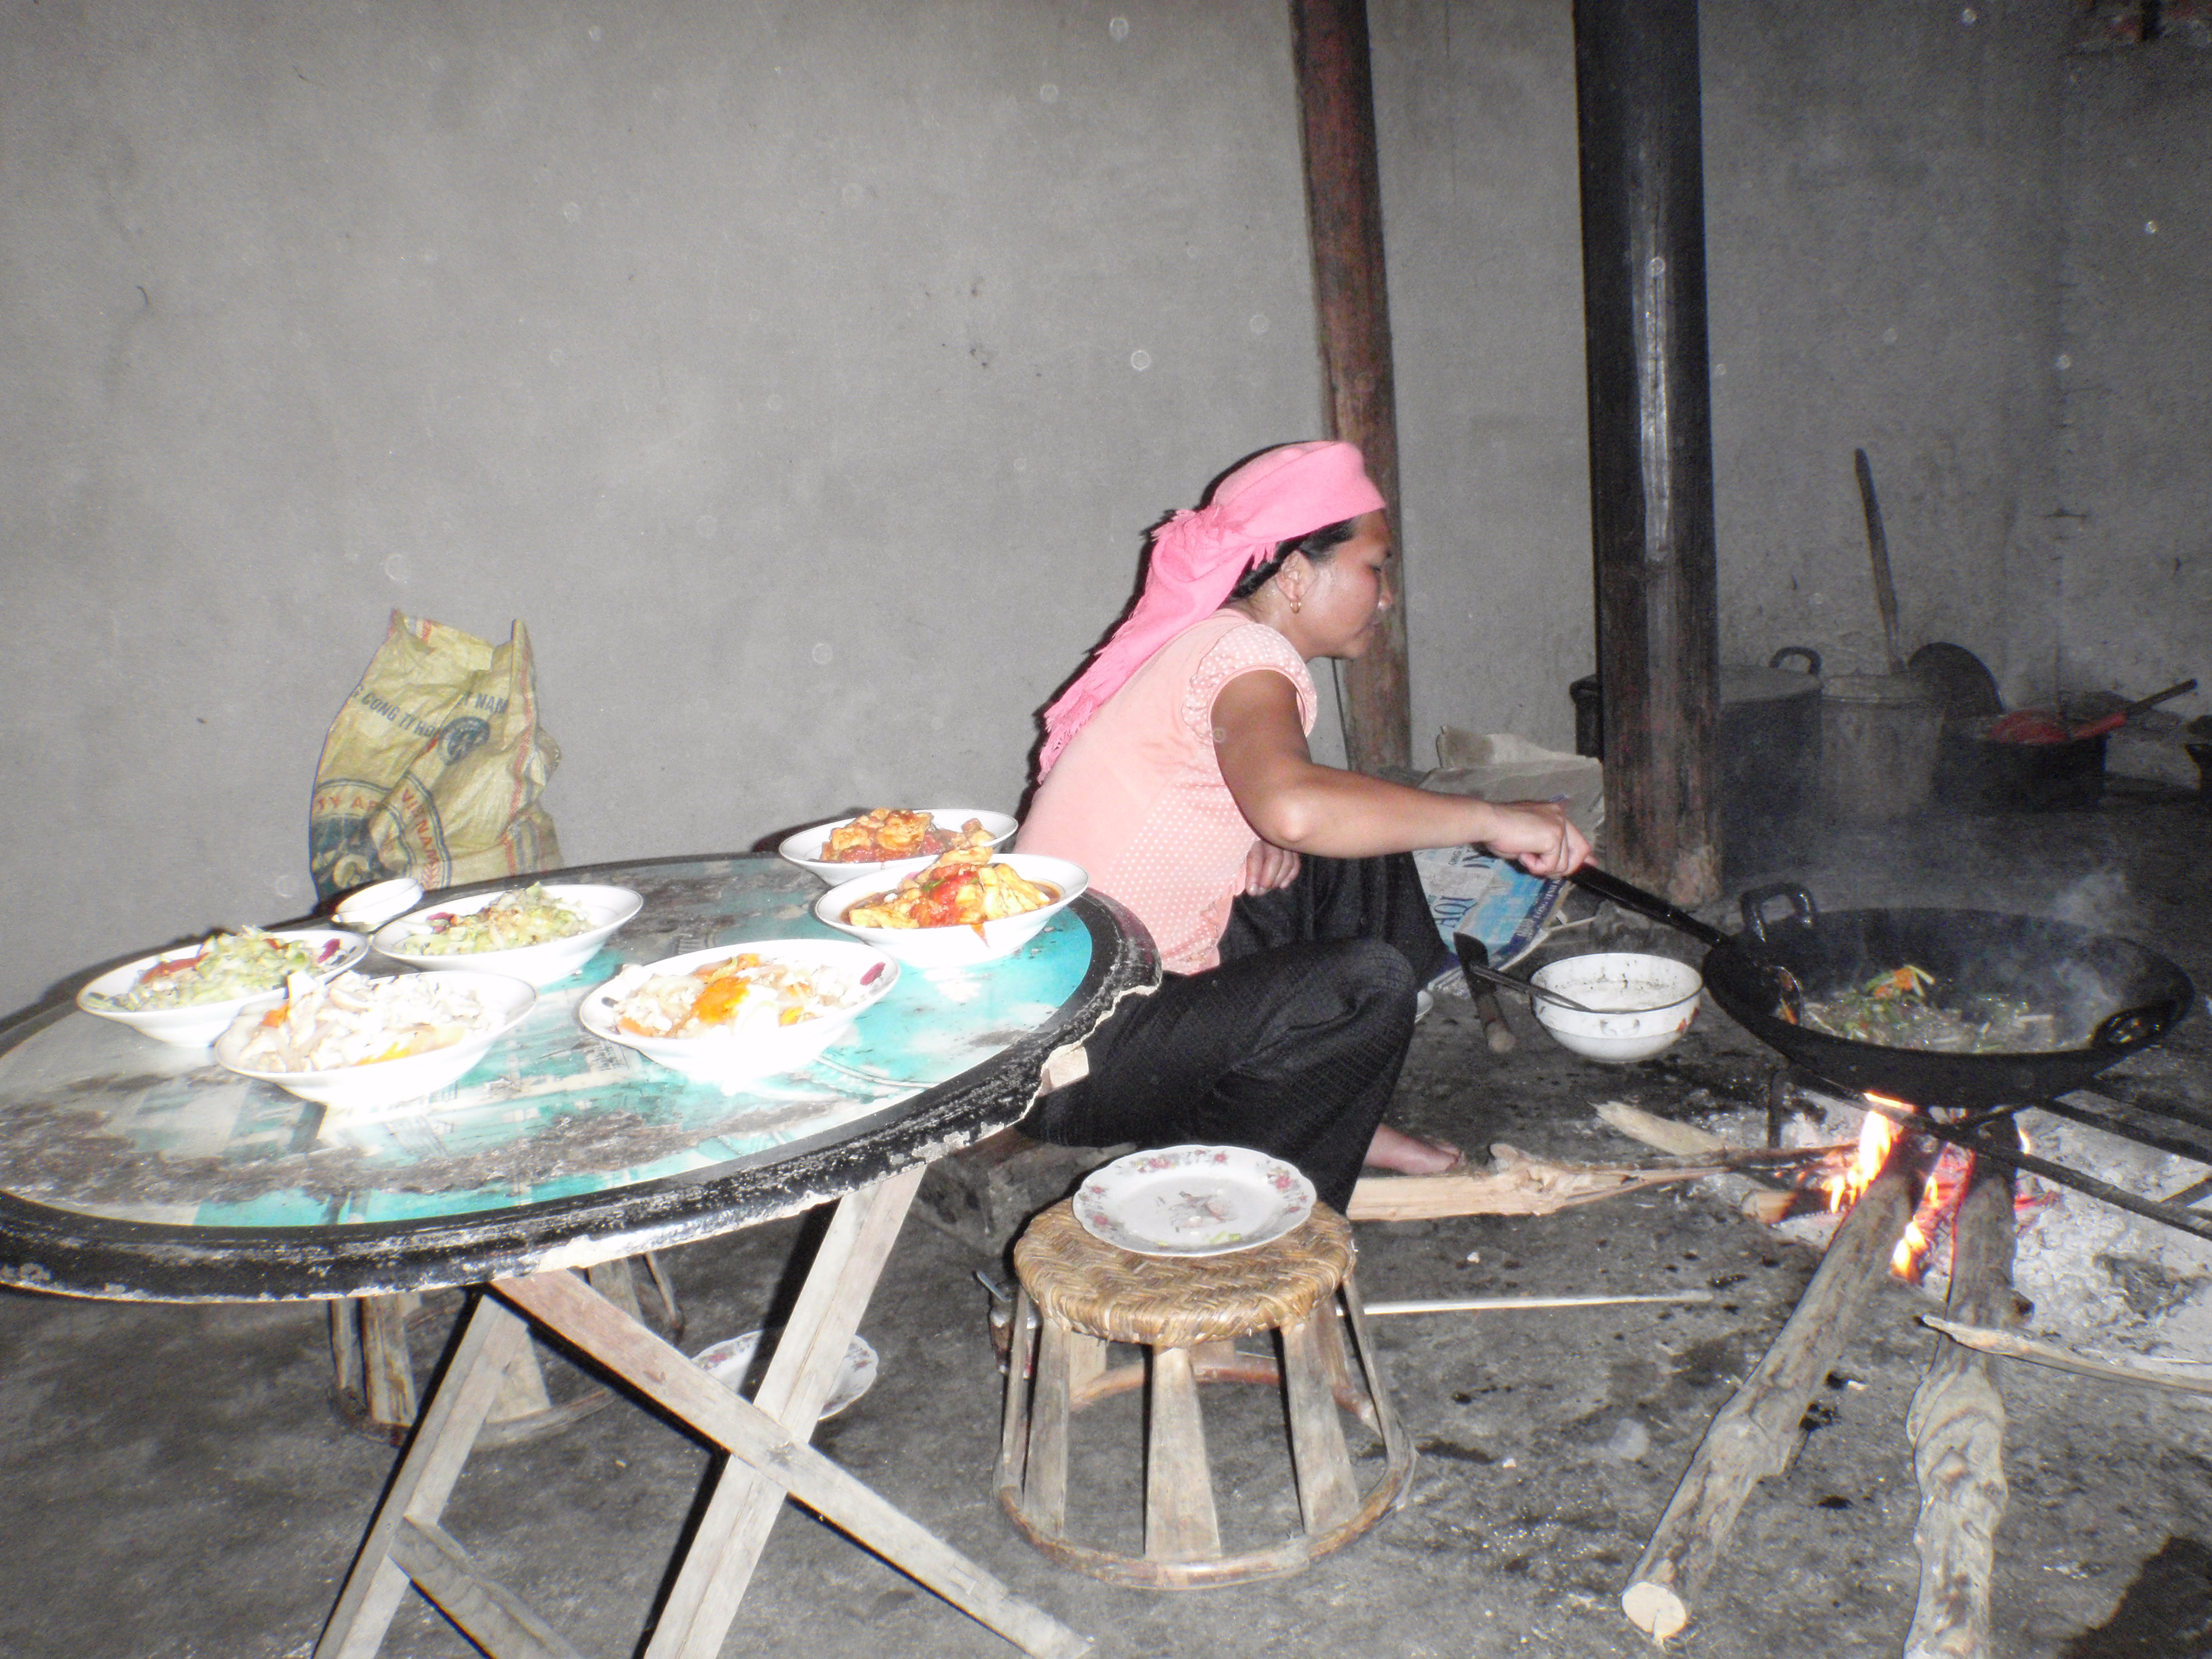 Homestay cooking up a storm